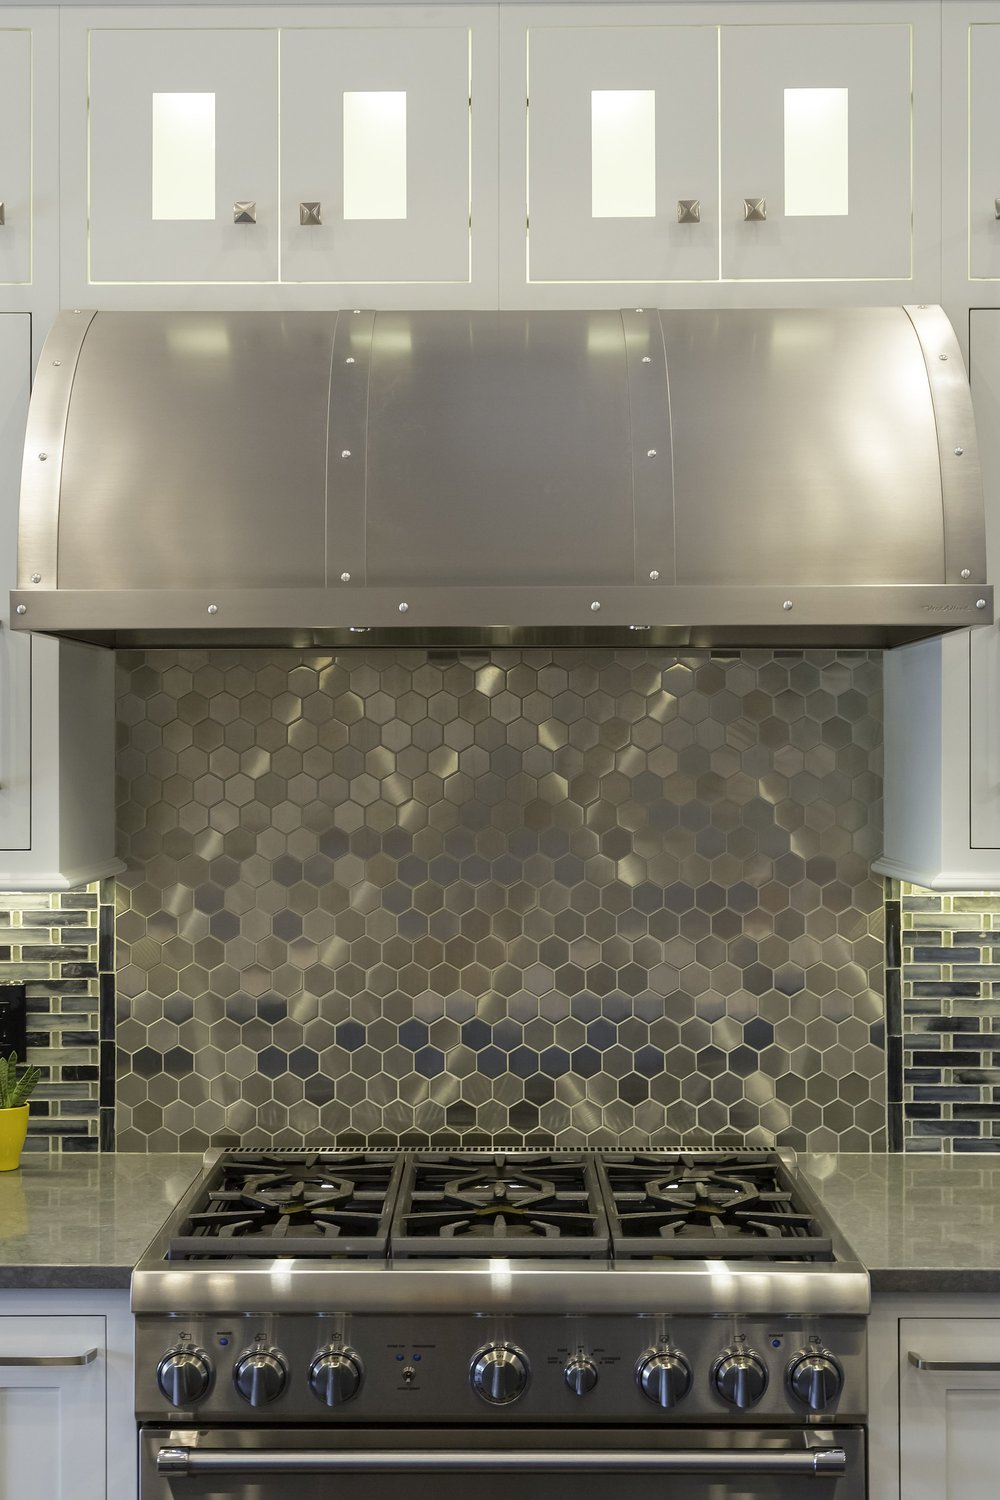 Transitional style kitchen with trendy backsplash